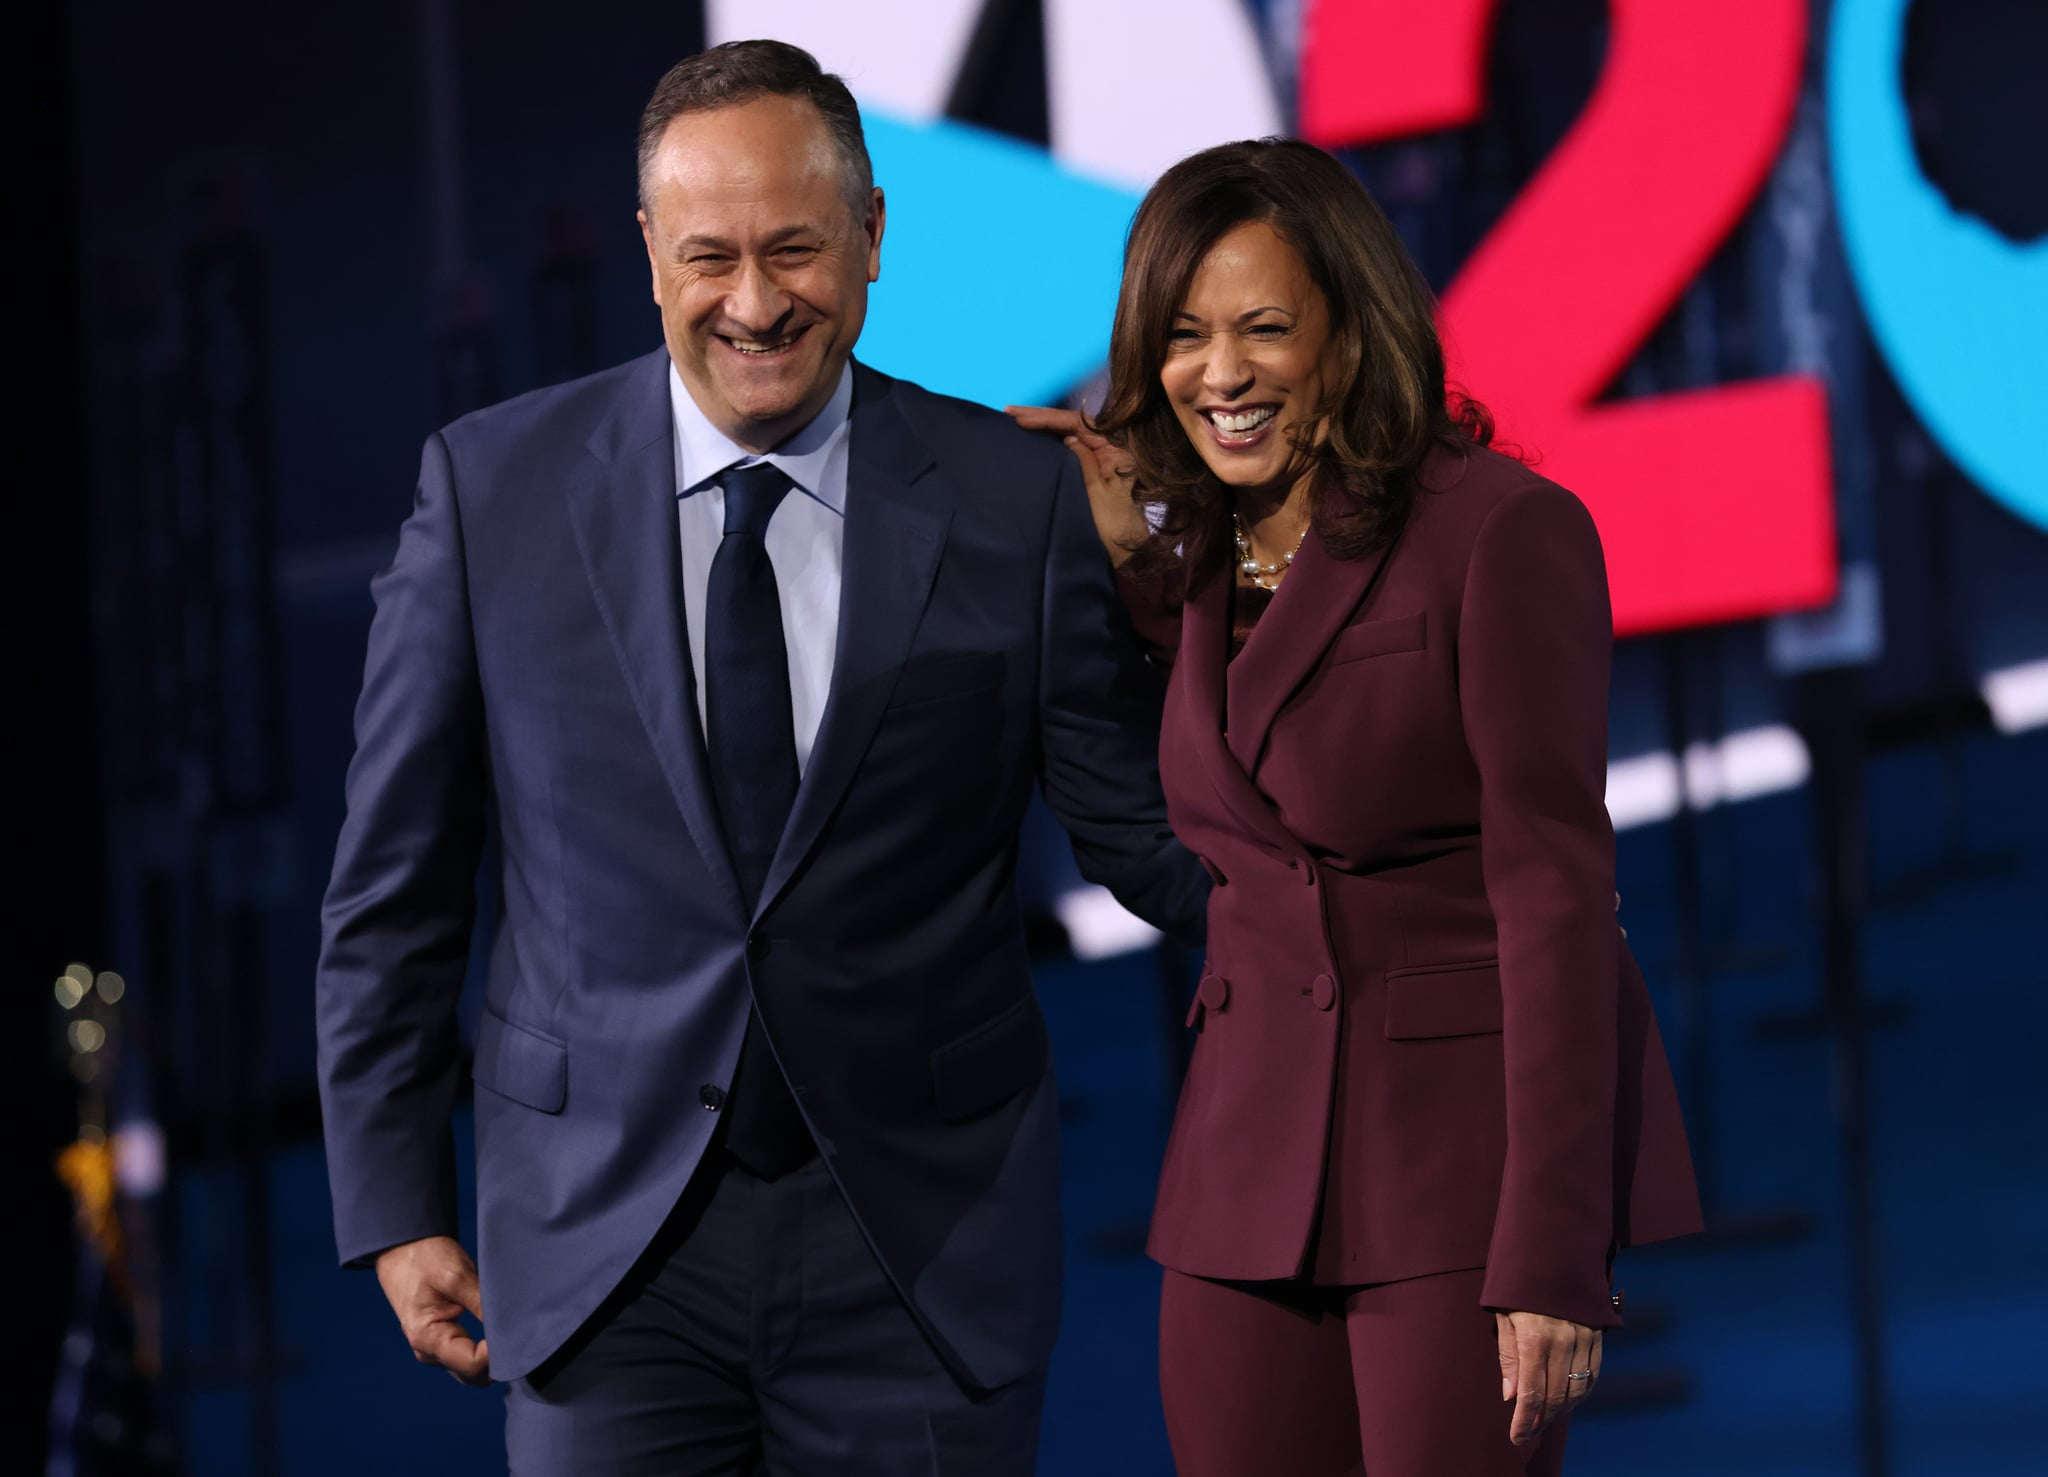 WILMINGTON, DELAWARE - AUGUST 19:  Democratic vice presidential nominee U.S. Sen. Kamala Harris (D-CA) and her husband Douglas Emhoff appear on stage after Harris delivered her acceptance speech on the third night of the Democratic National Convention from the Chase Centre August 19, 2020 in Wilmington, Delaware. The convention, which was once expected to draw 50,000 people to Milwaukee, Wisconsin, is now taking place virtually due to the coronavirus pandemic. Harris is the first African-American, first Asian-American, and third female vice presidential candidate on a major party ticket. (Photo by Win McNamee/Getty Images)